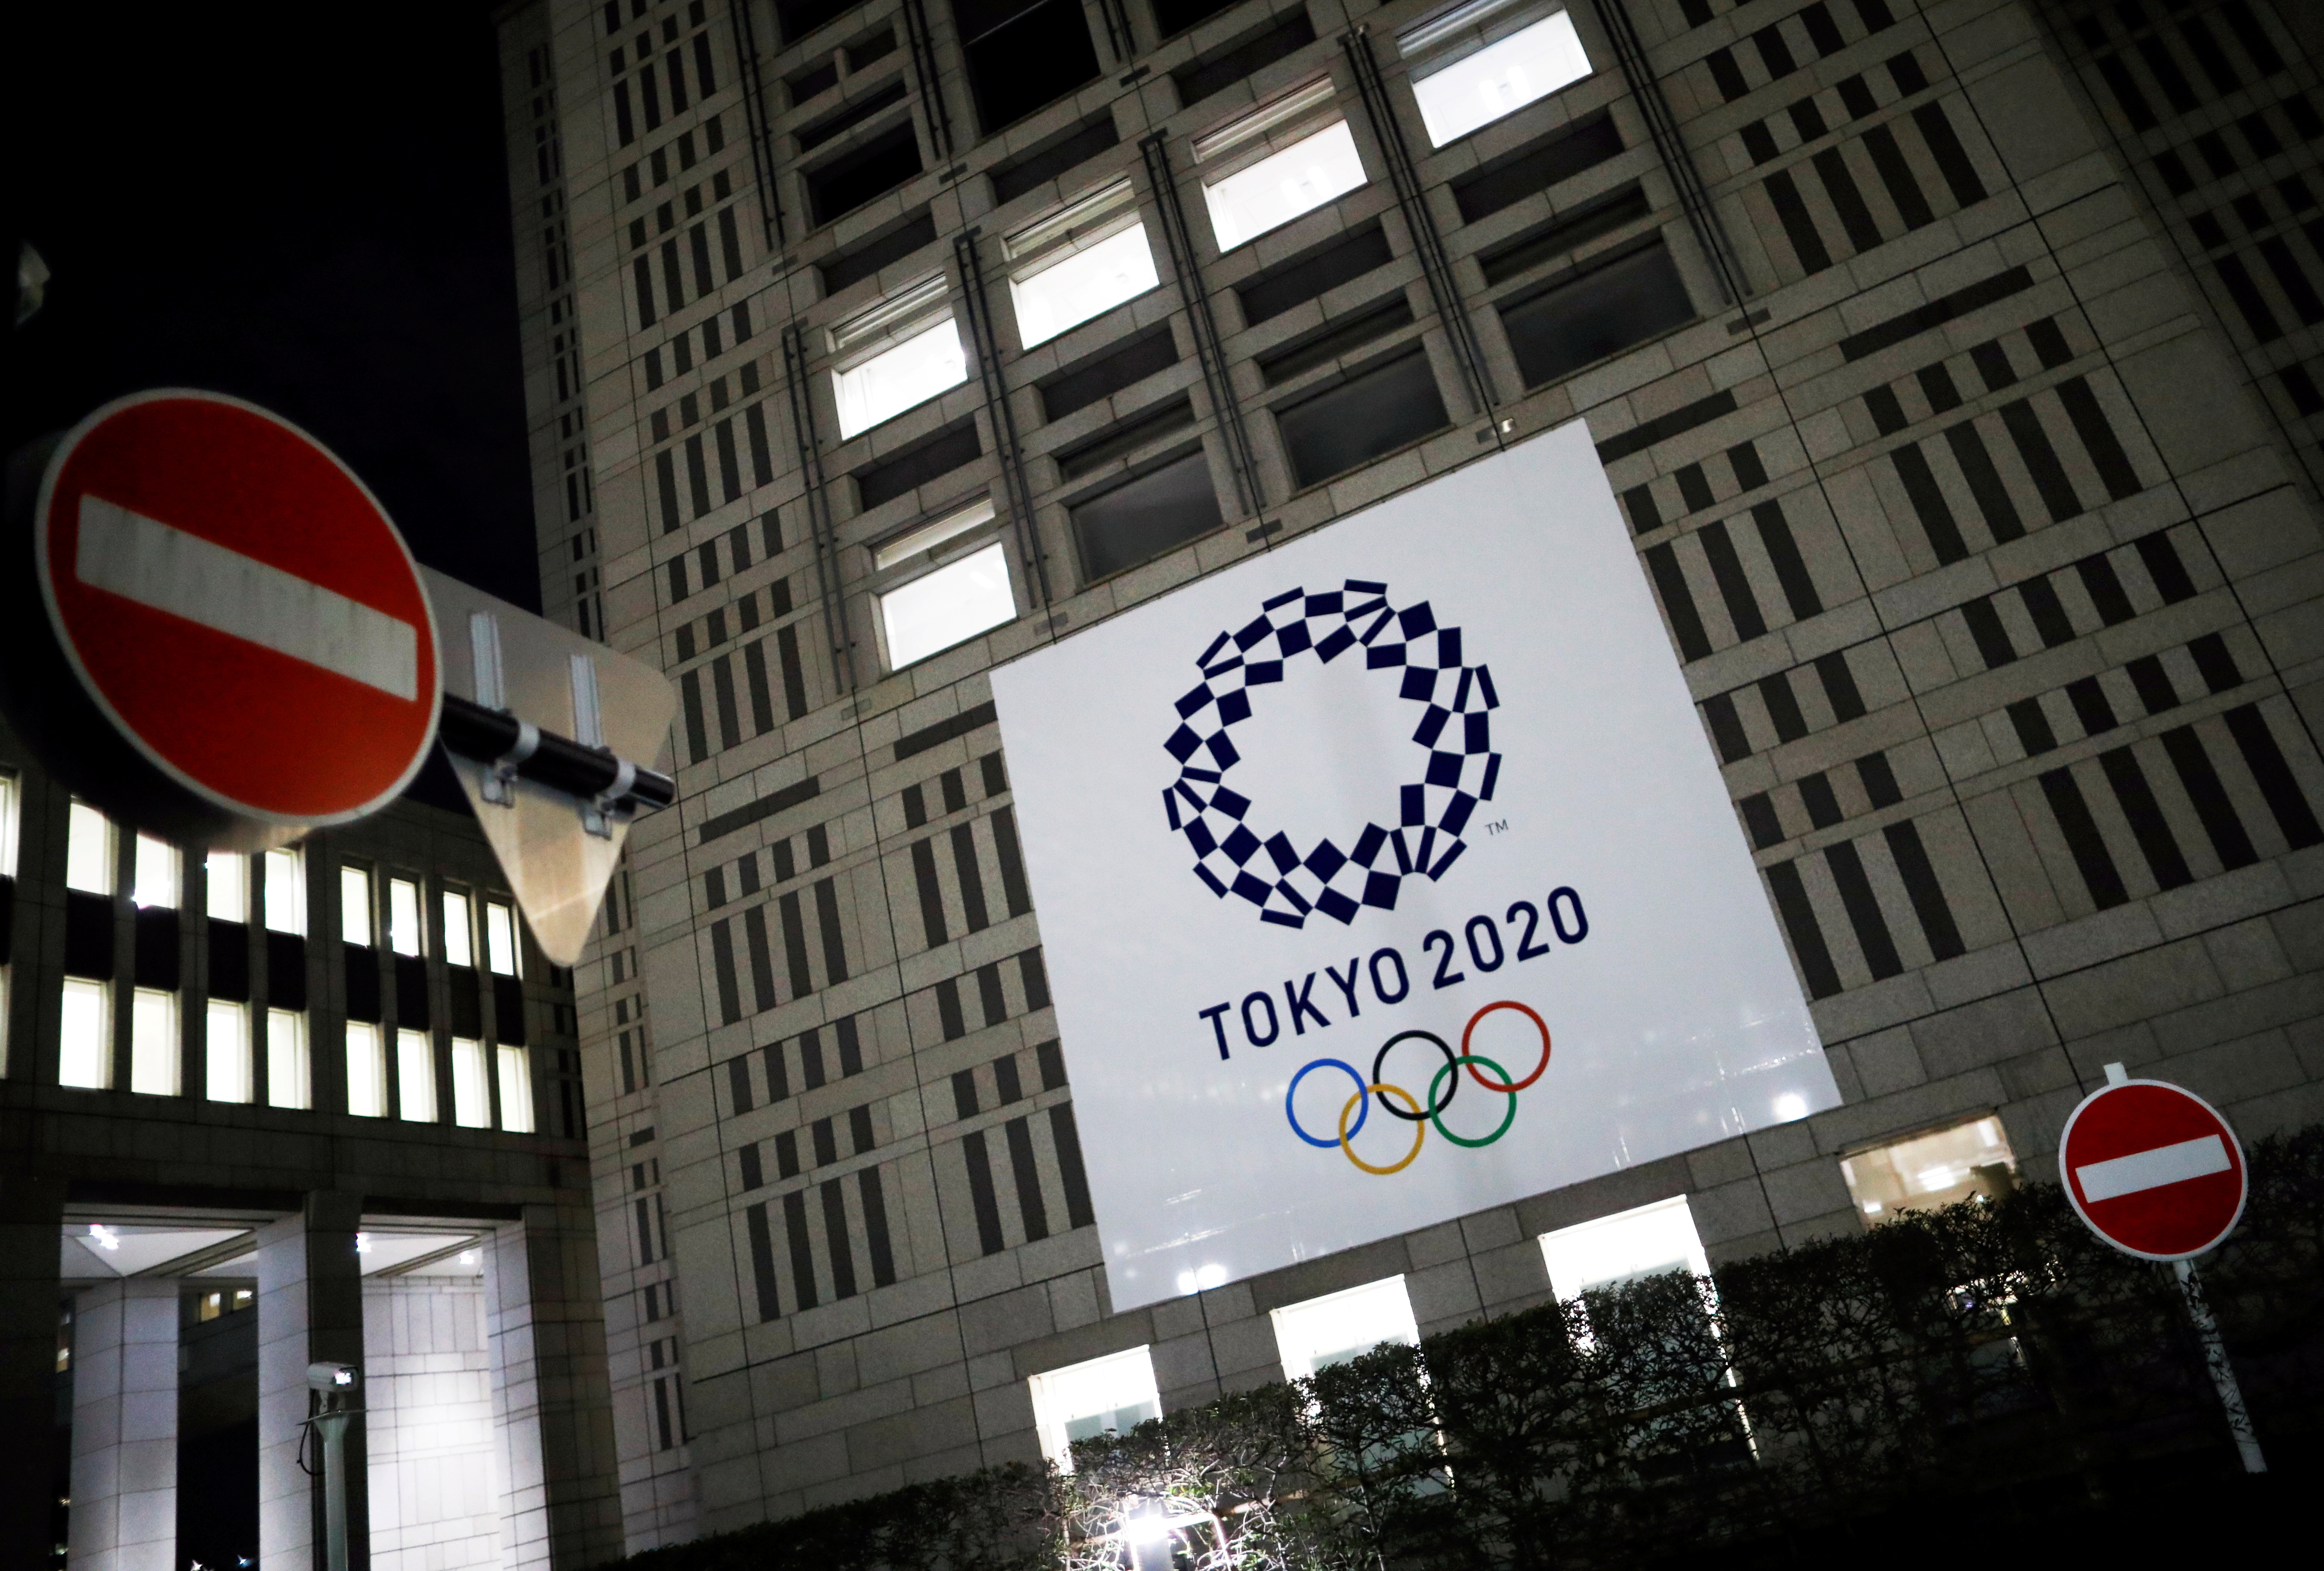 The logo of Tokyo 2020 Olympic Games that have been postponed to 2021 due to the coronavirus disease (COVID-19) outbreak, is seen through signboards, at Tokyo Metropolitan Government Office building in Tokyo, Japan January 22, 2021. REUTERS/Issei Kato